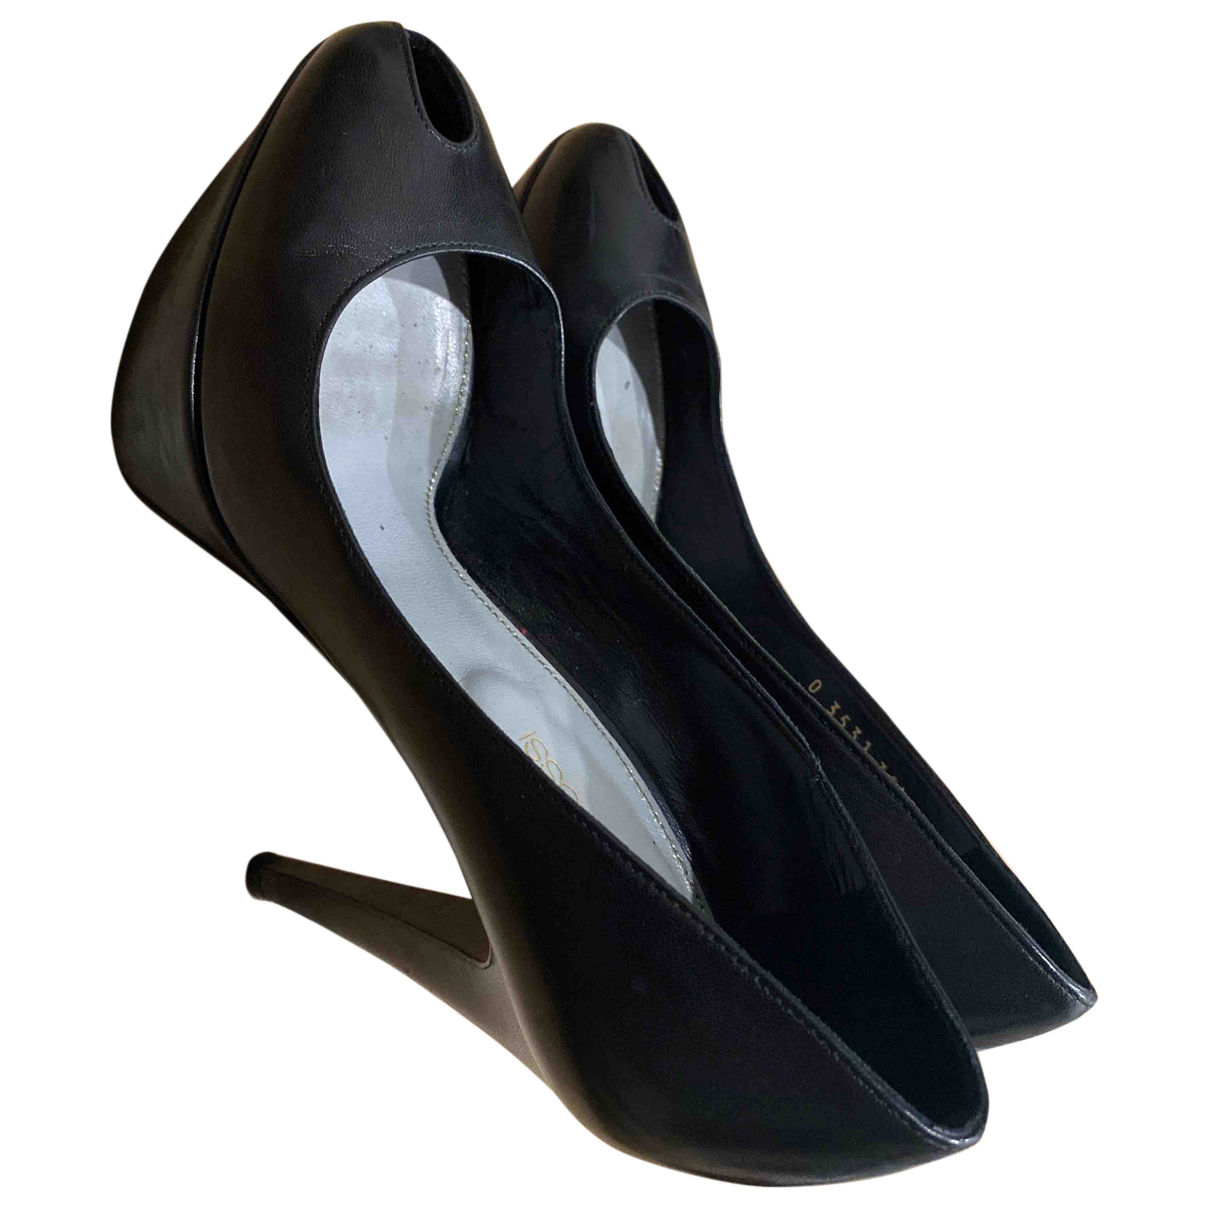 Sergio Rossi N Black Leather Heels for Women 2.5 UK